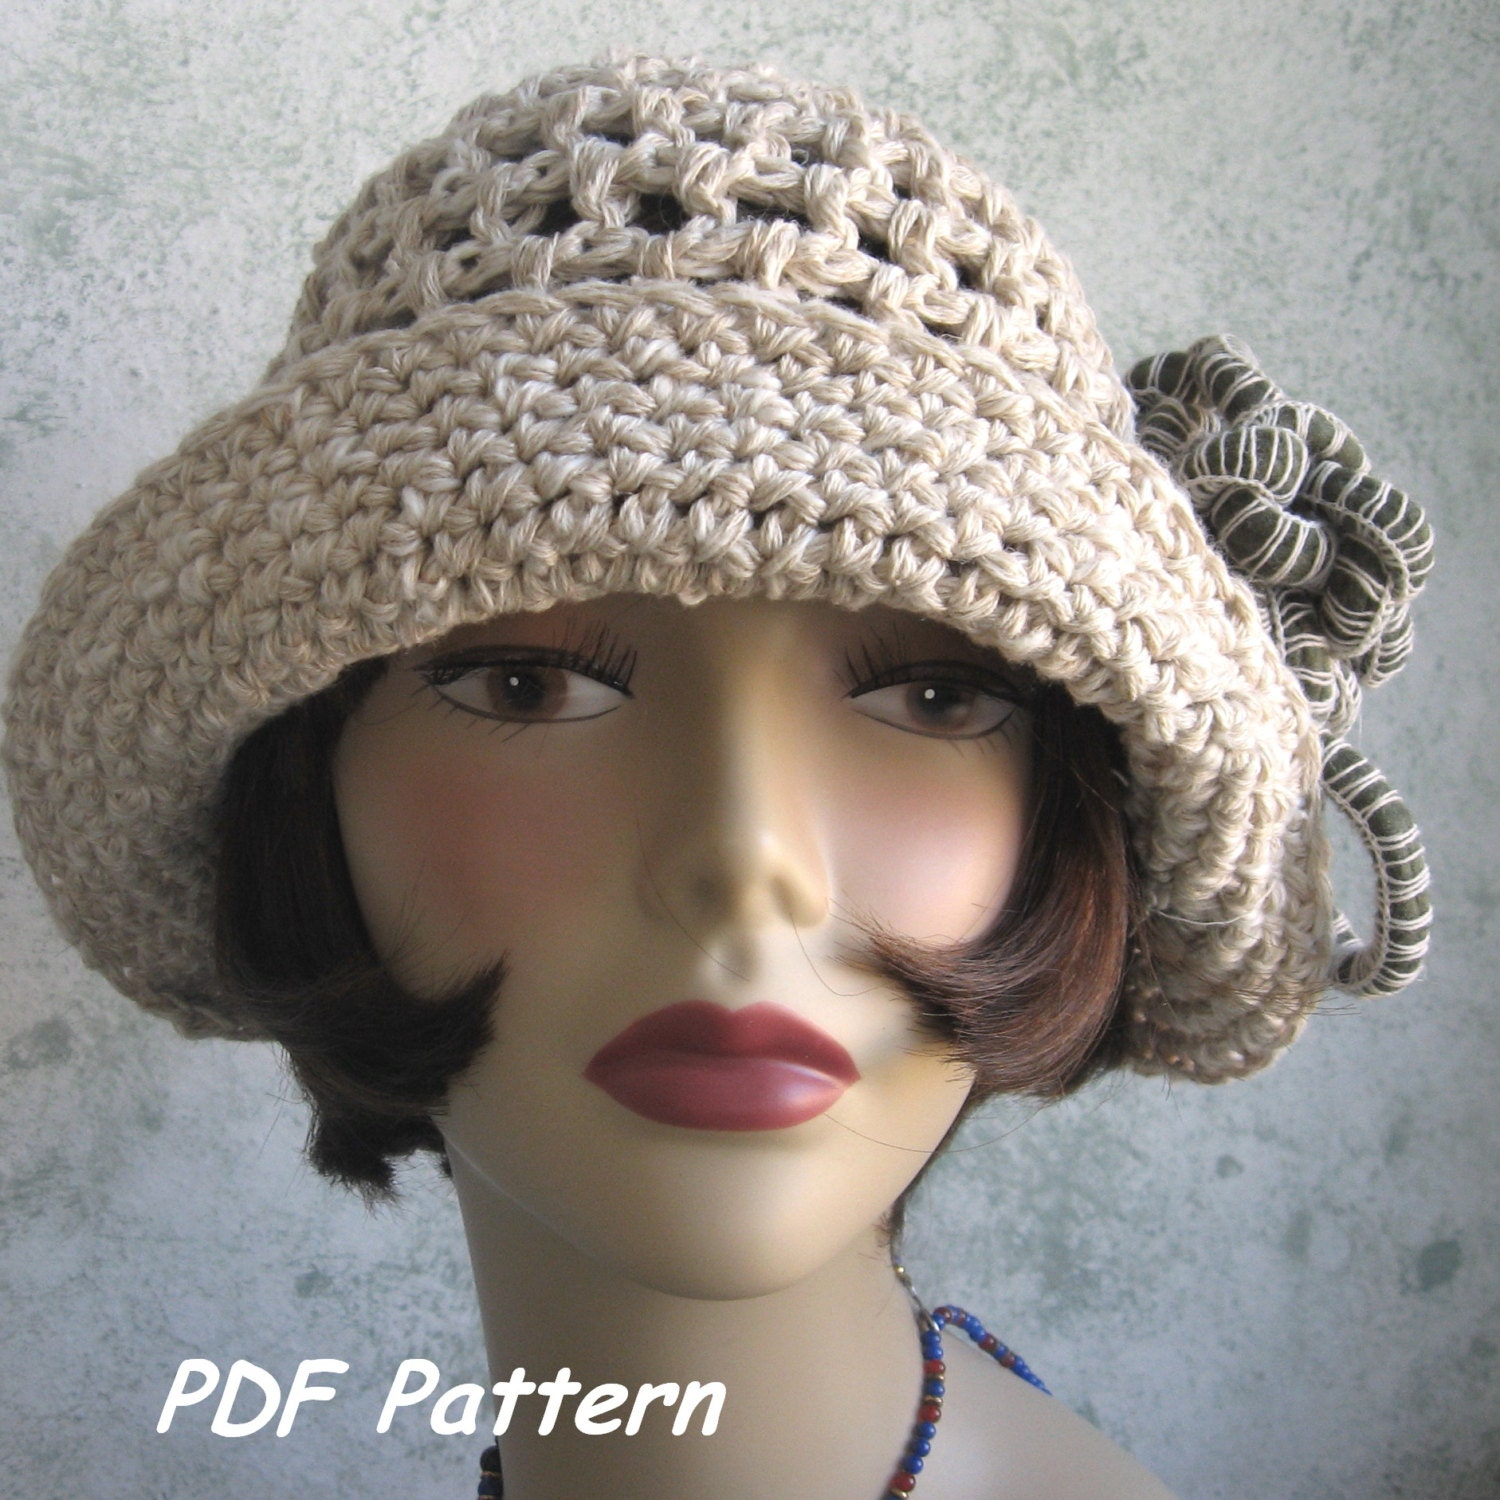 Crochet Hat Pattern Cloche : Brimmed Crochet Hat Pattern Cloche With Flower Trim PDF